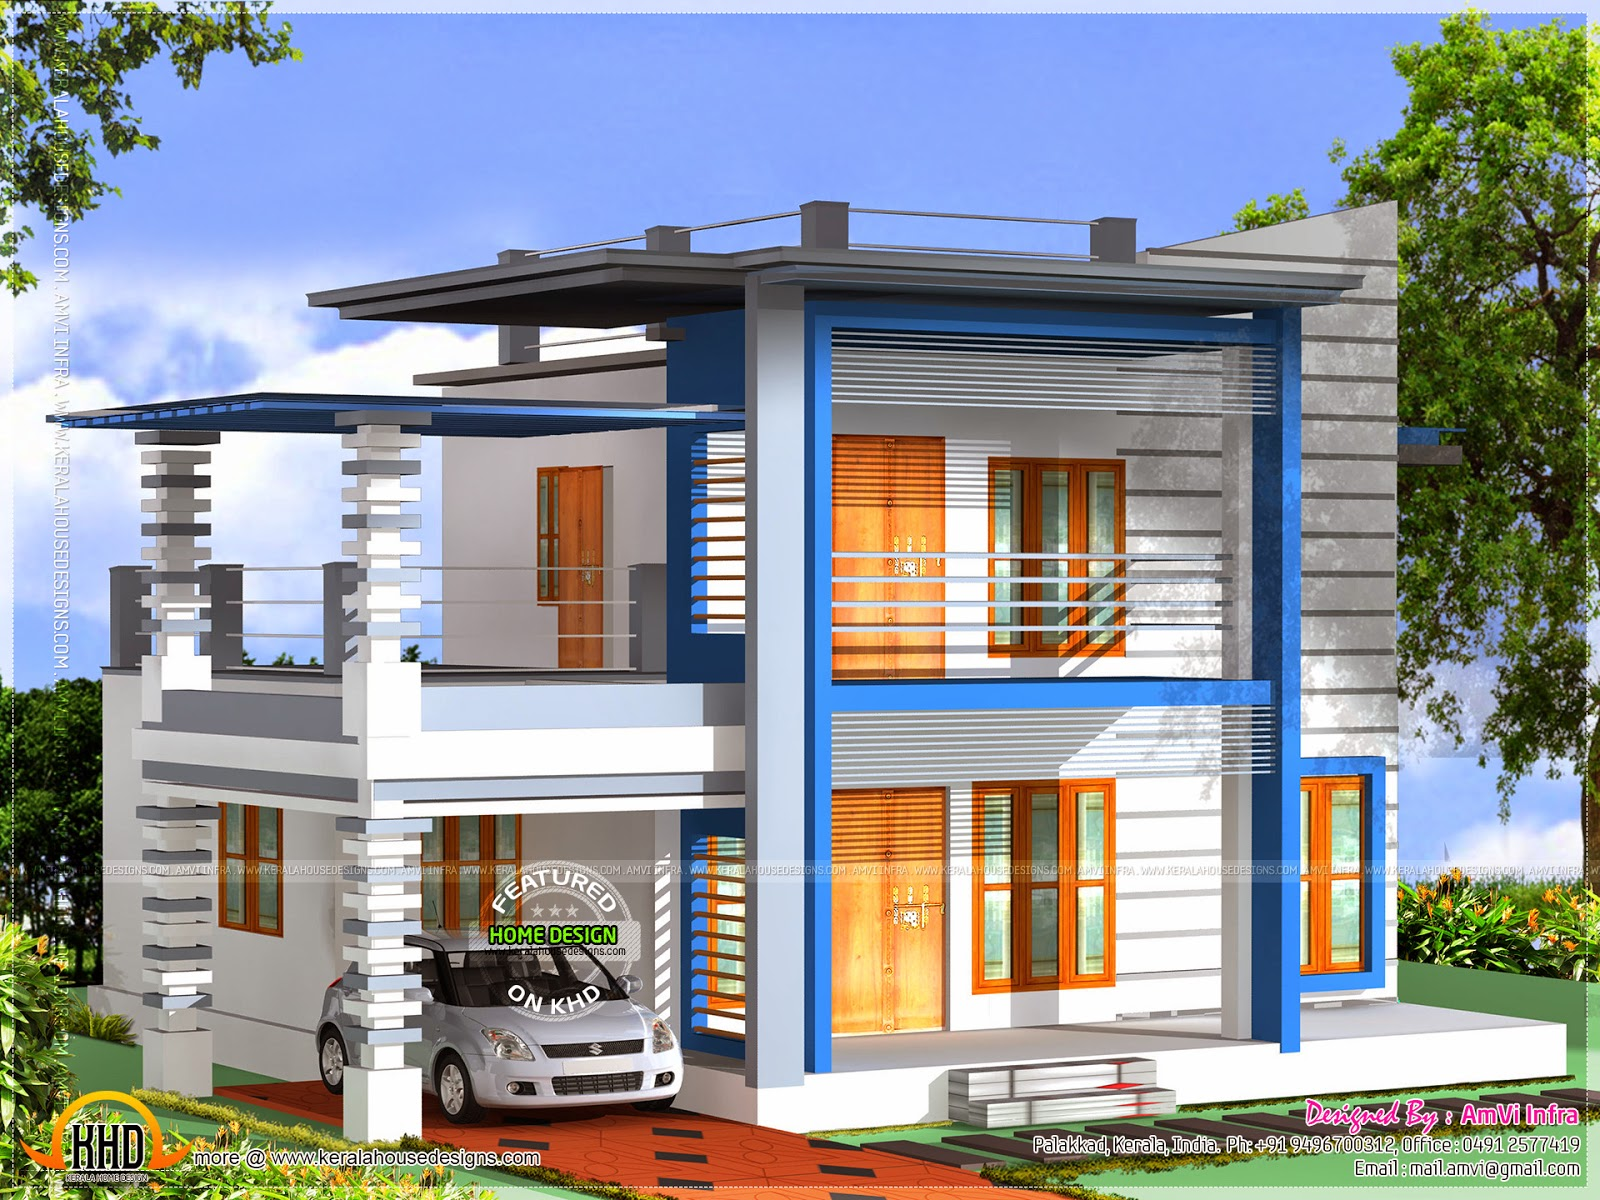 News And Article Online  3d view with floor plan Free floor plan available   yes  3D view